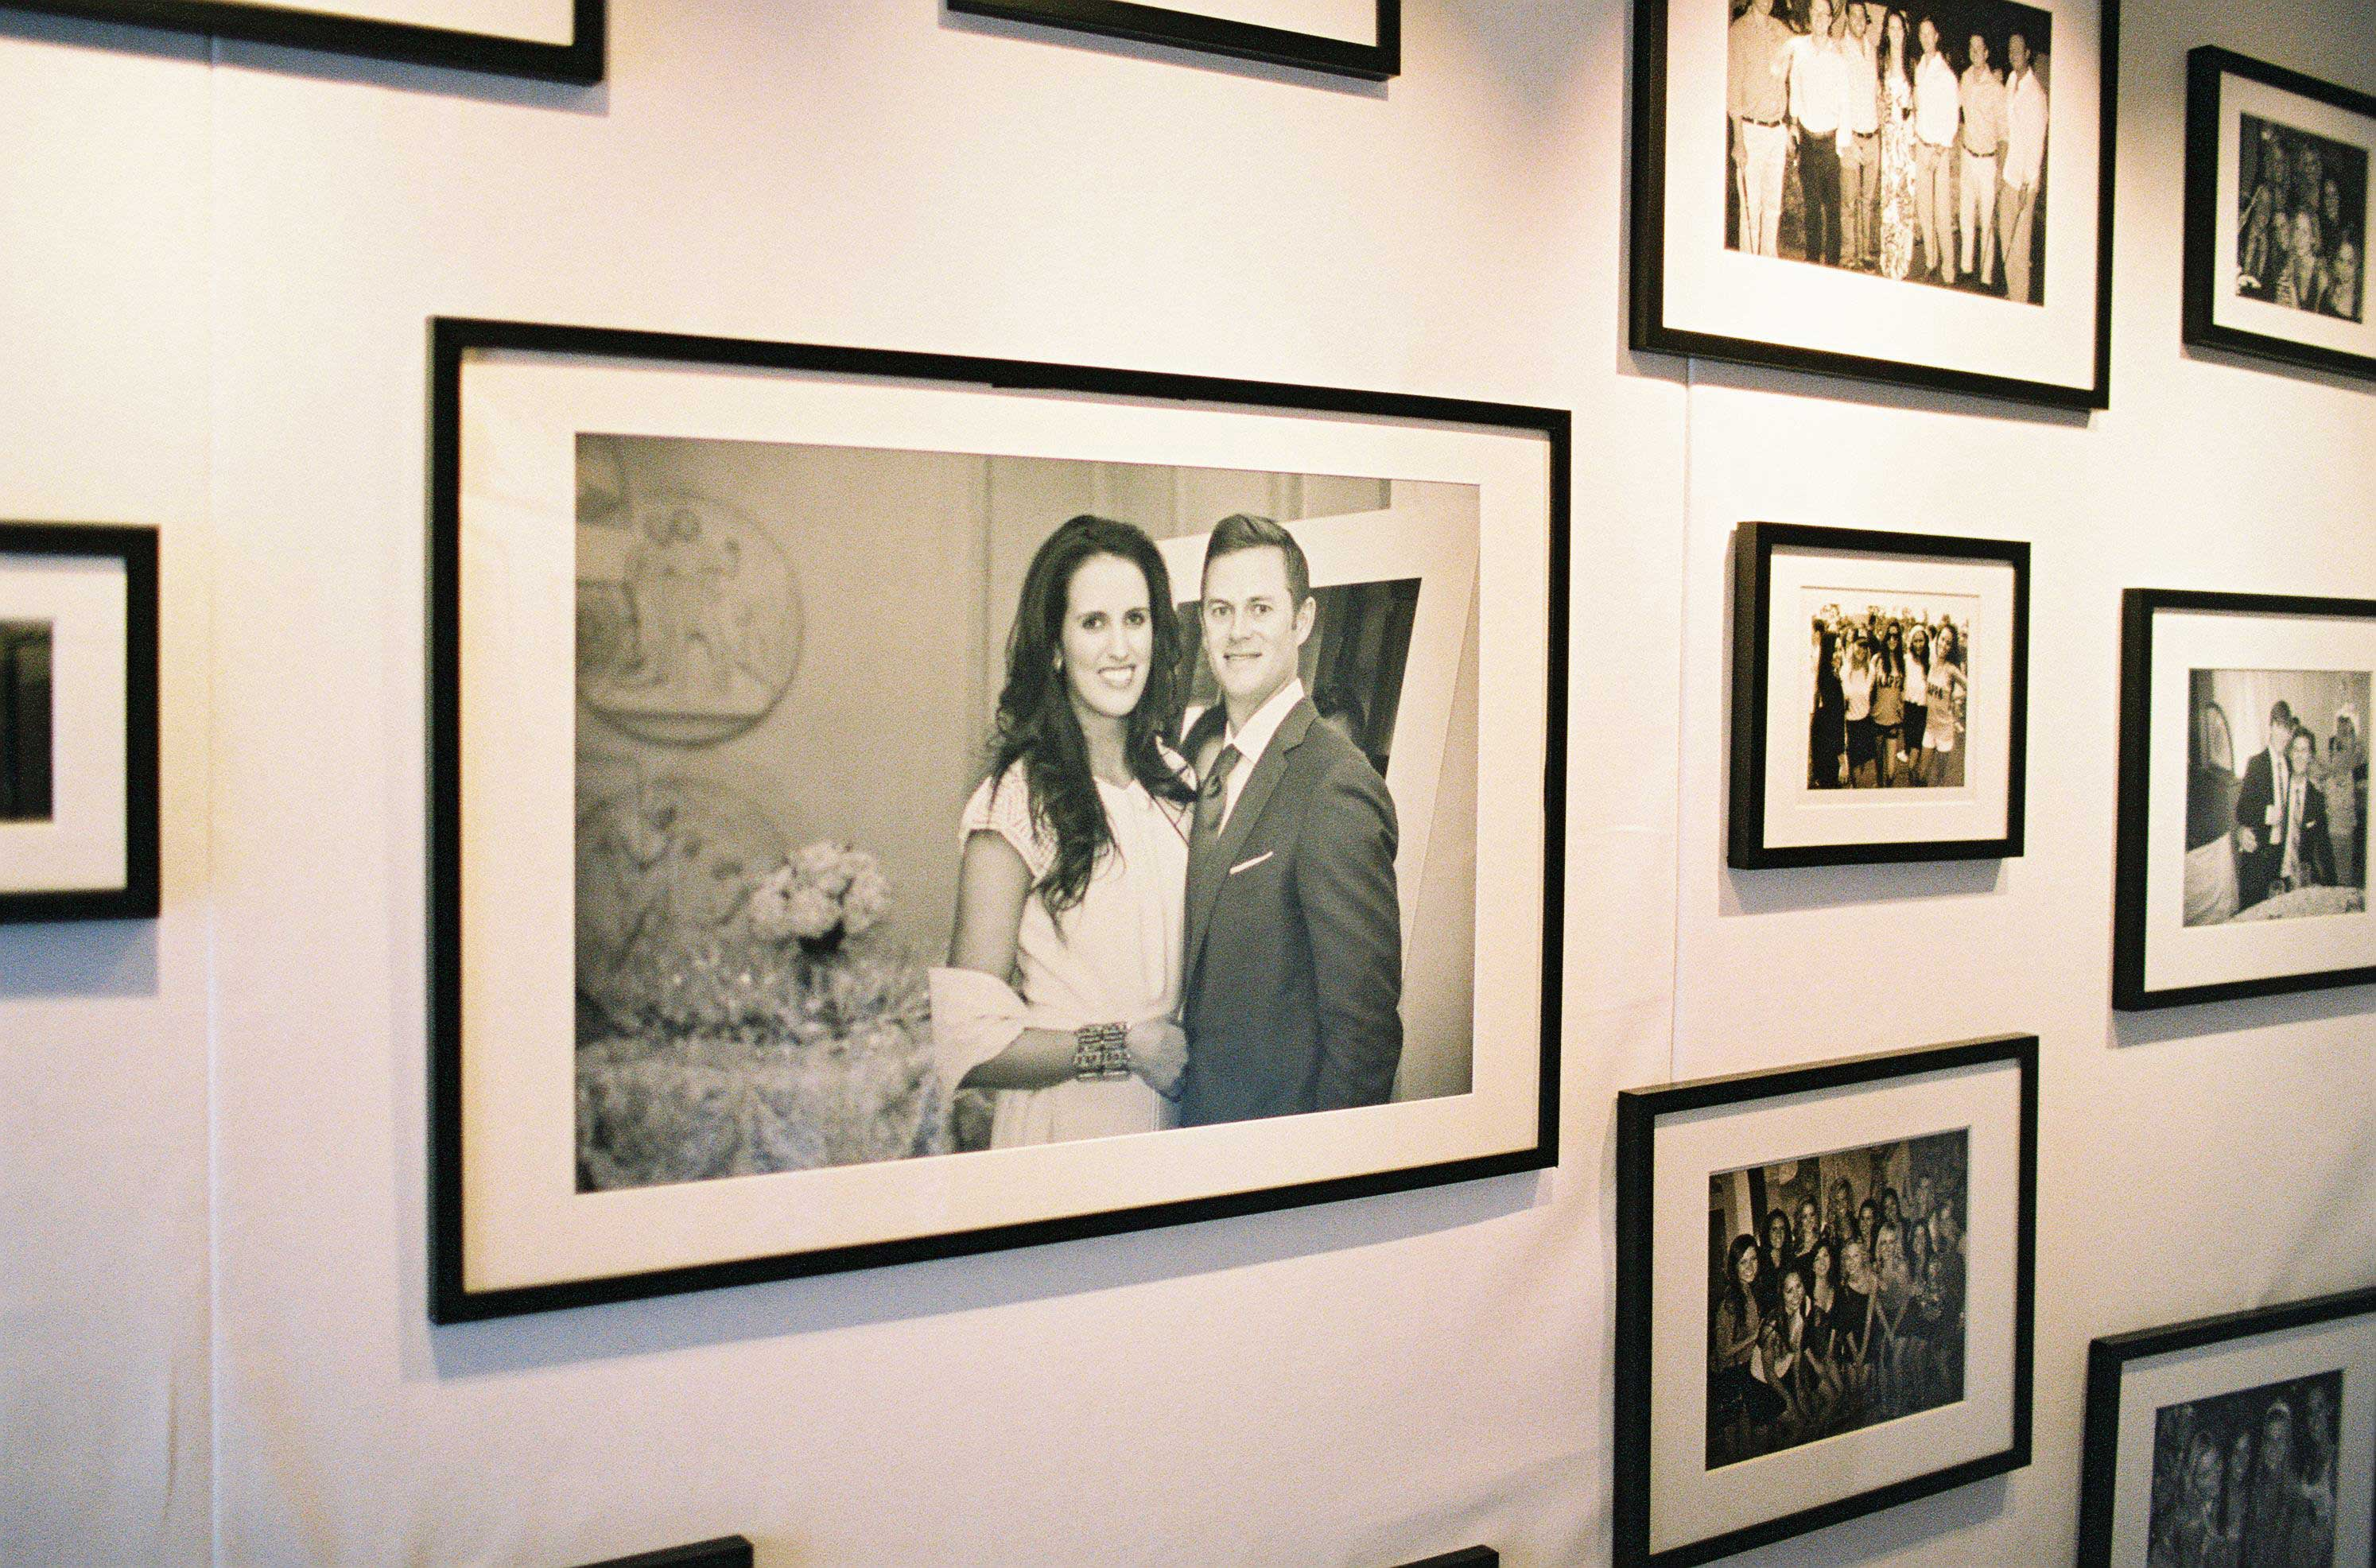 Framed photos of couple and family on gallery wall at rehearsal dinner